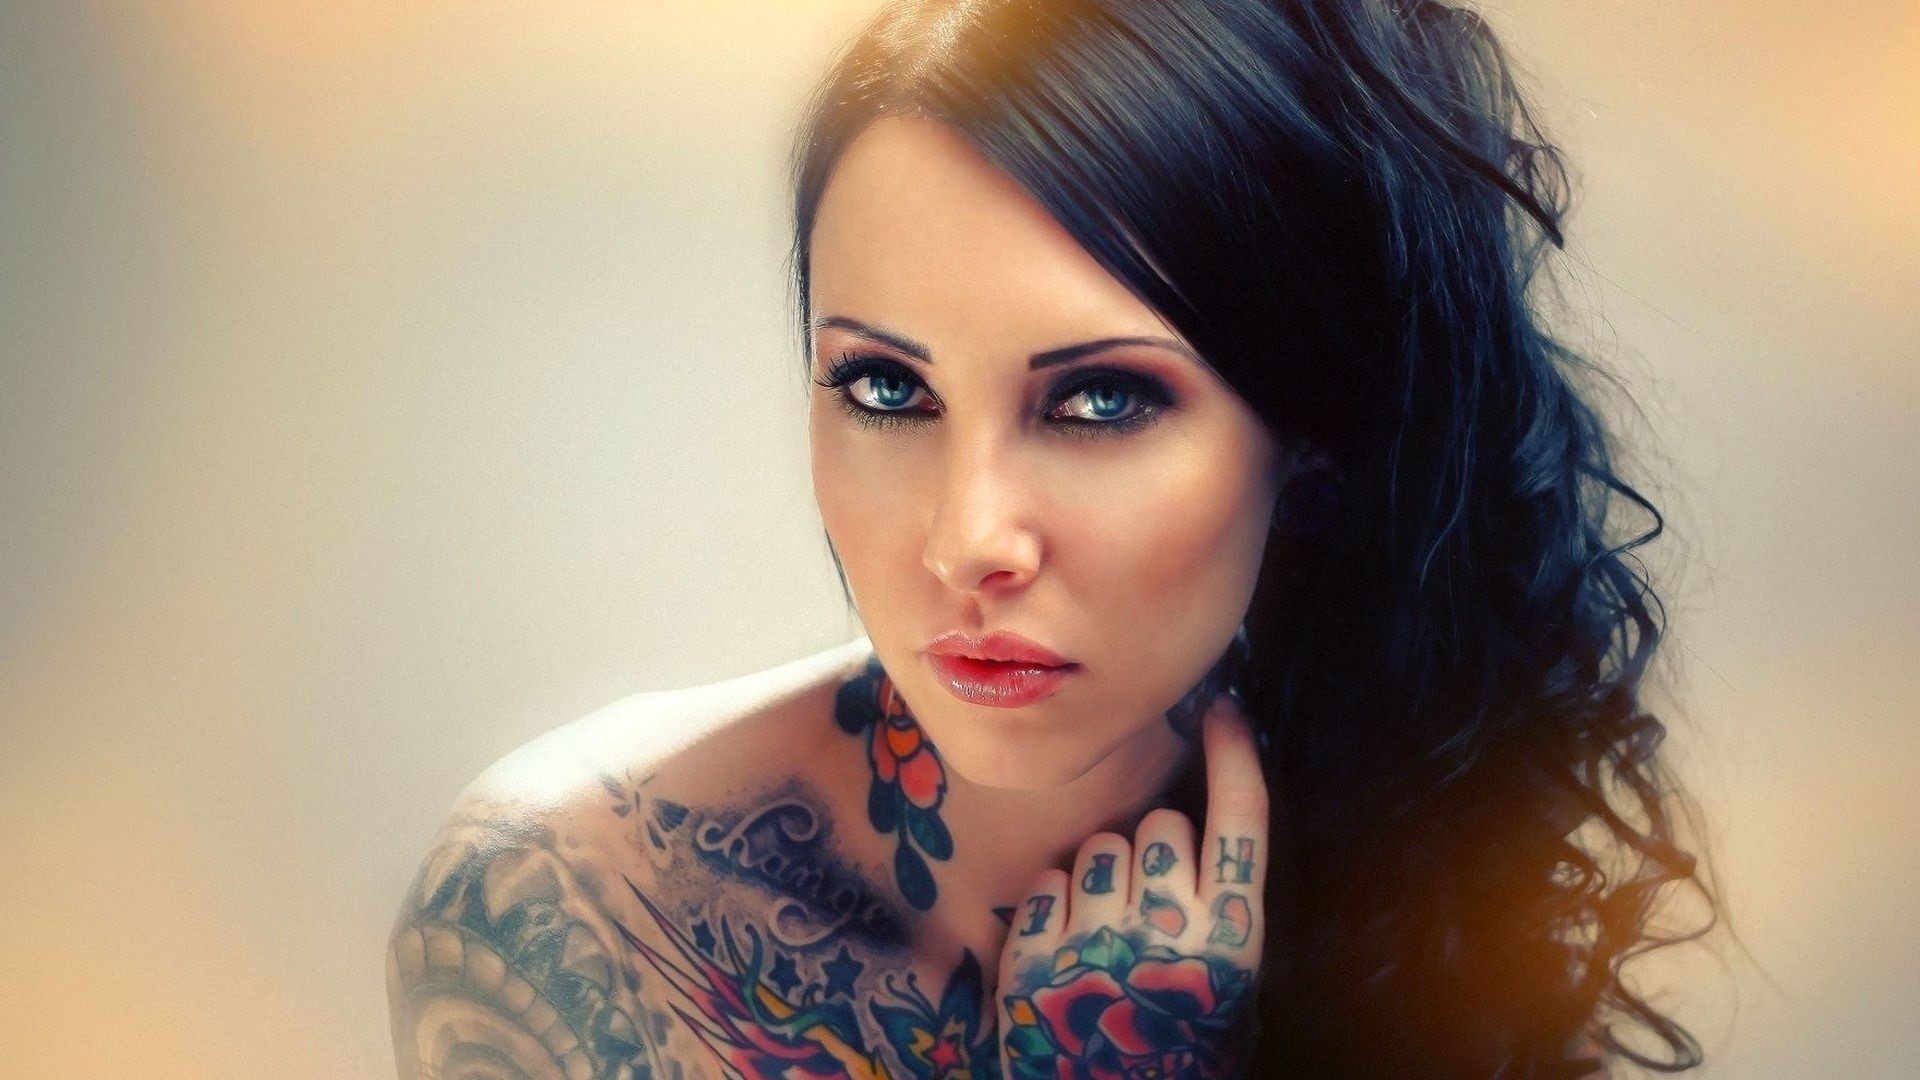 Blue-eyed Girl With A Tattoo On His Arm And Shoulder - Artbat Tabu Original Mix Fryhide , HD Wallpaper & Backgrounds